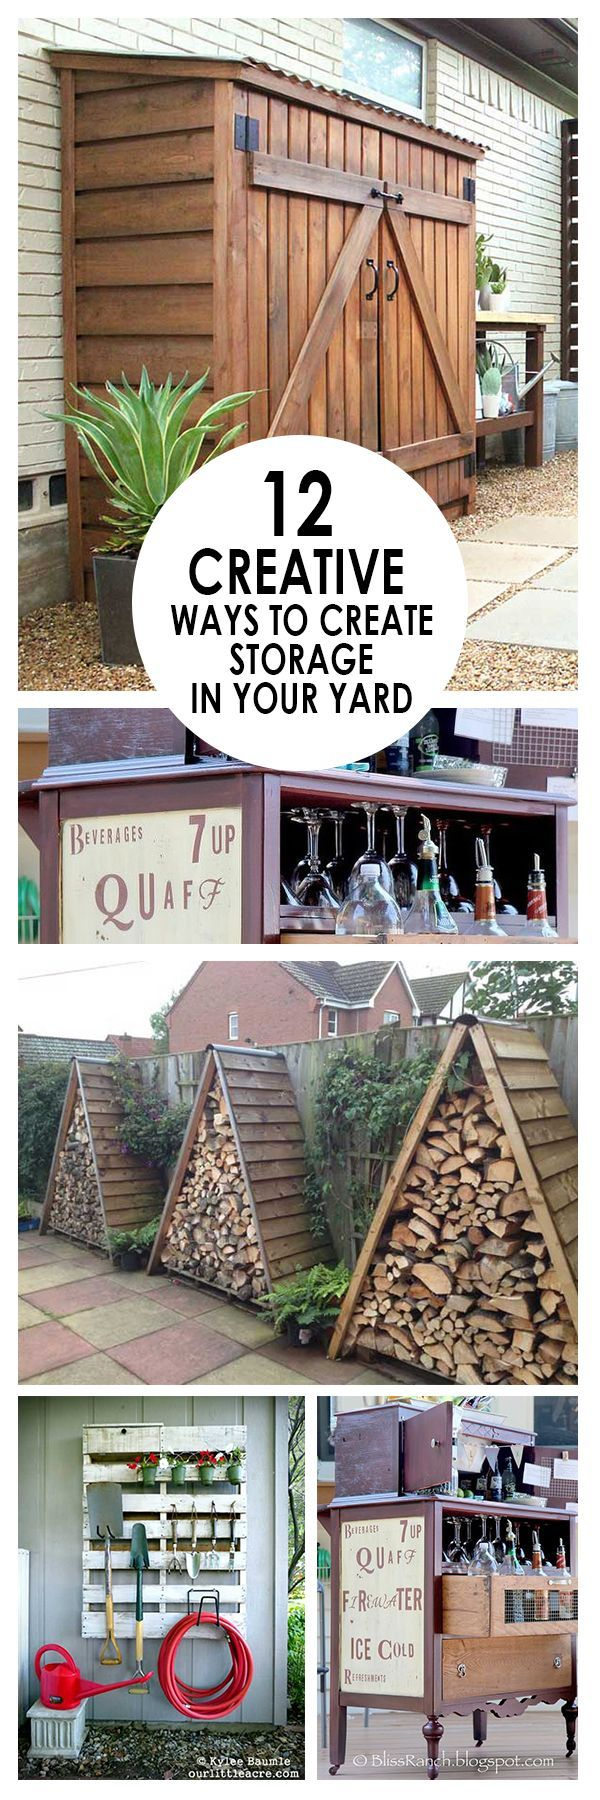 12-Creative-Ways-to-Create-Storage-in-Your-Yard-1-1.jpg 600 × 1 800 pixlar